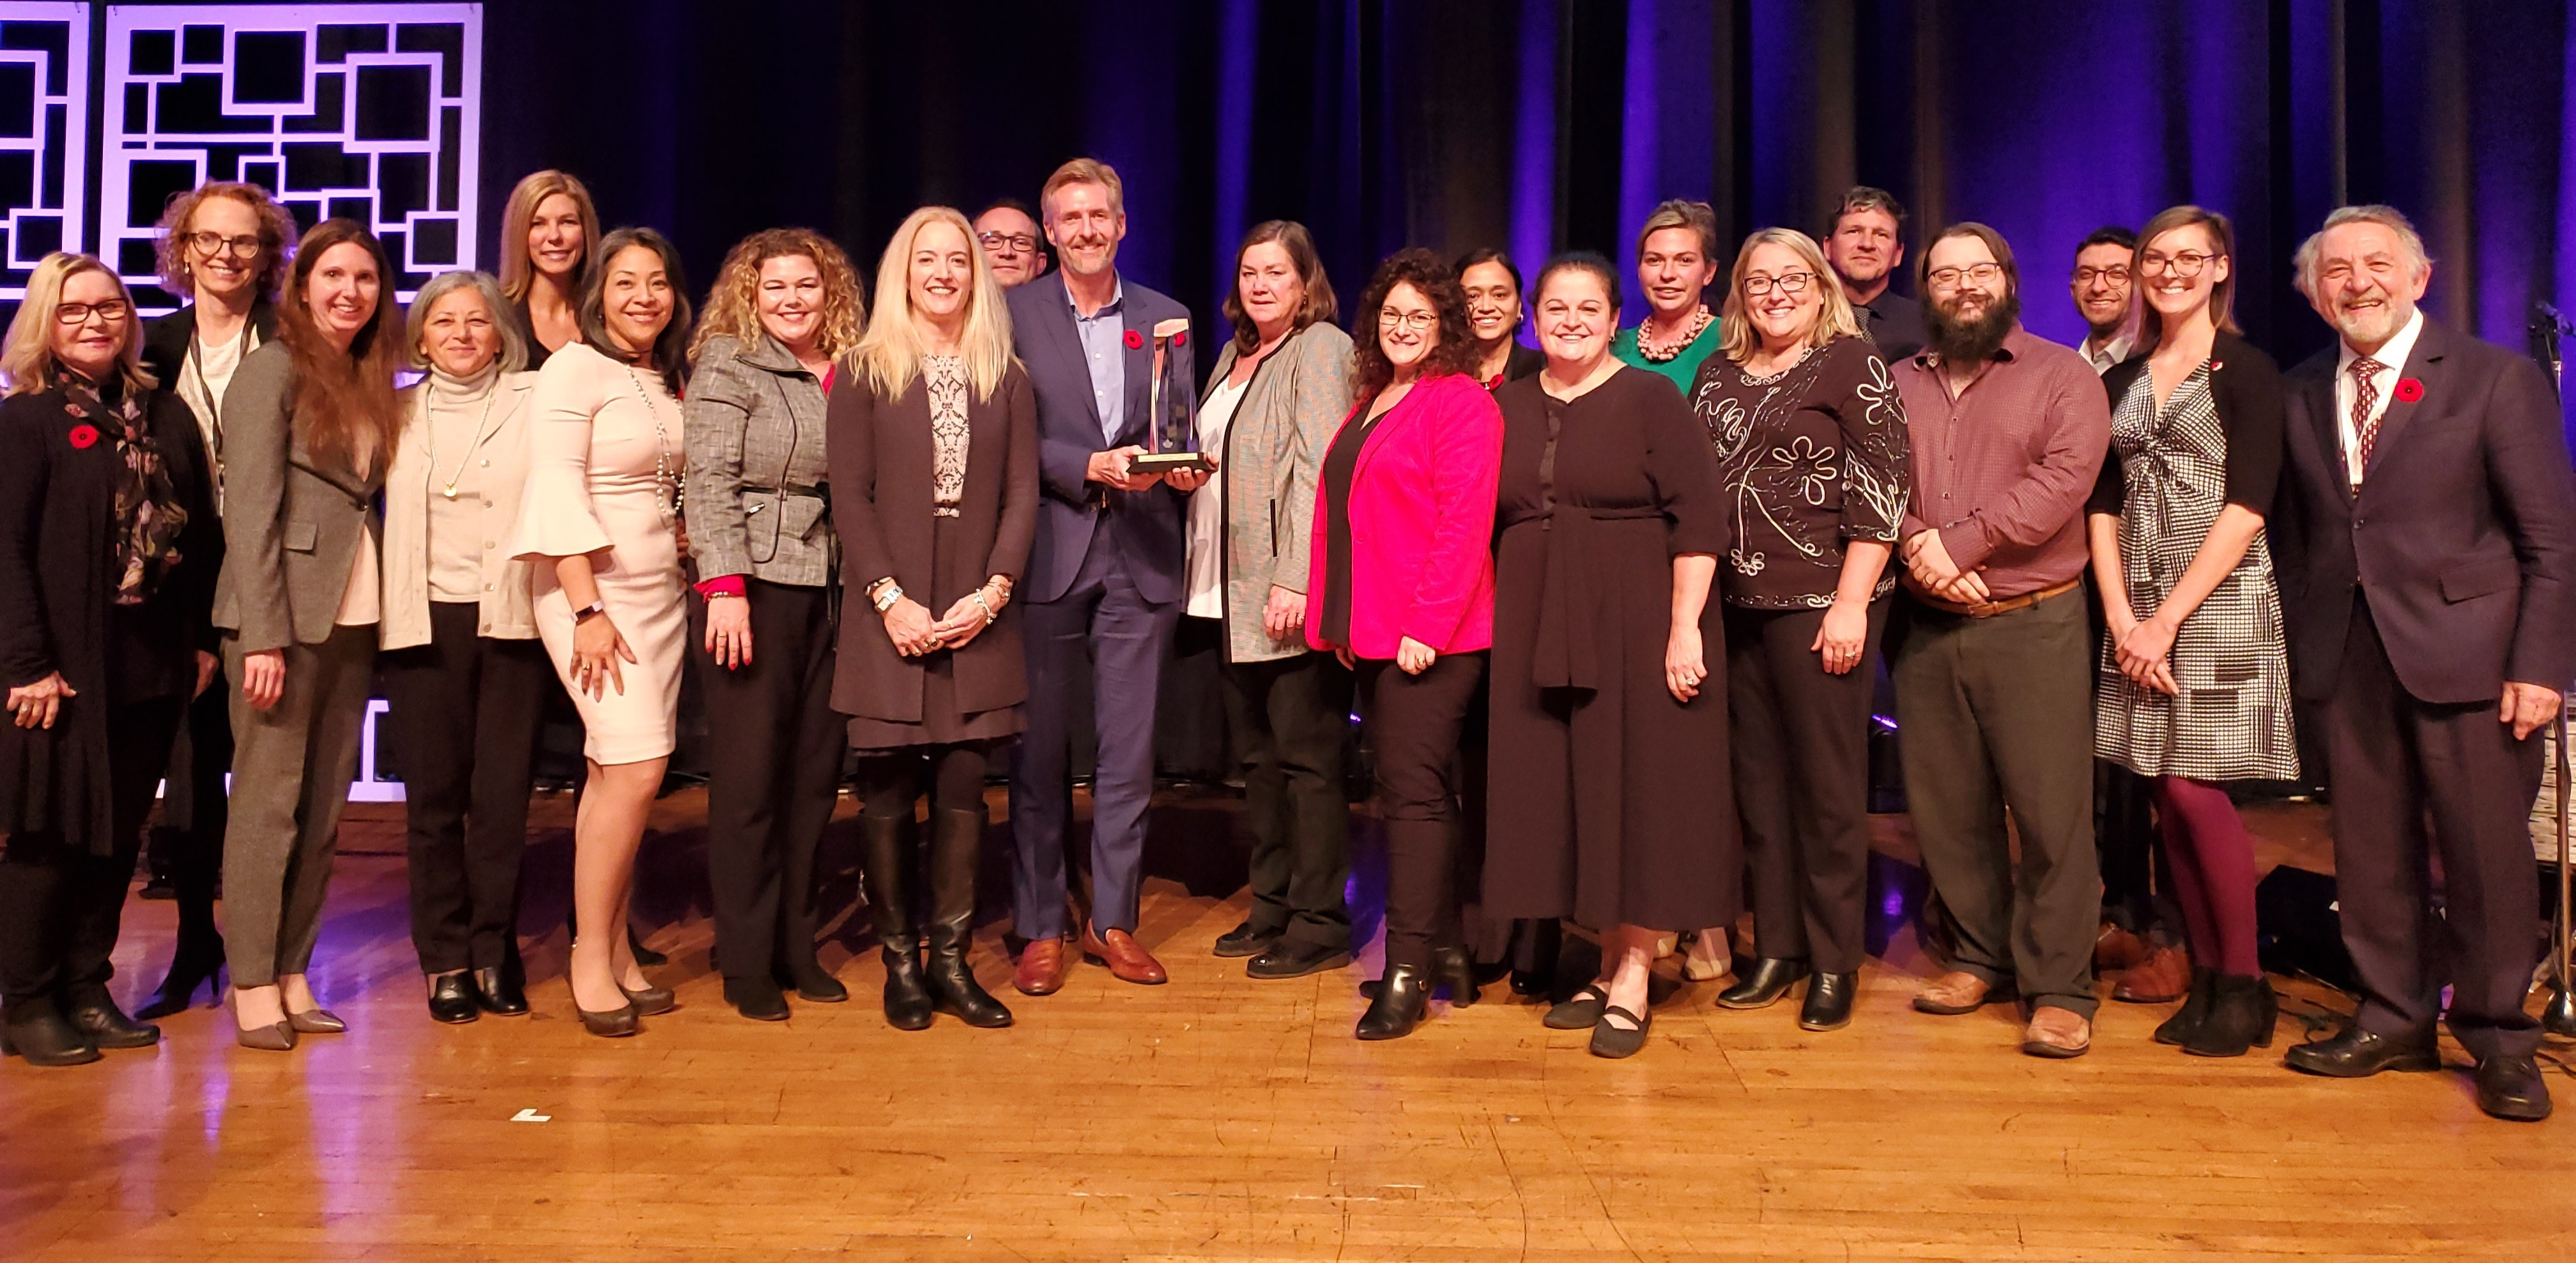 SE Health team members accept the 'Order of Excellence Award' on Tuesday, November 5,2019., at the Excellence Canada Awards in Toronto